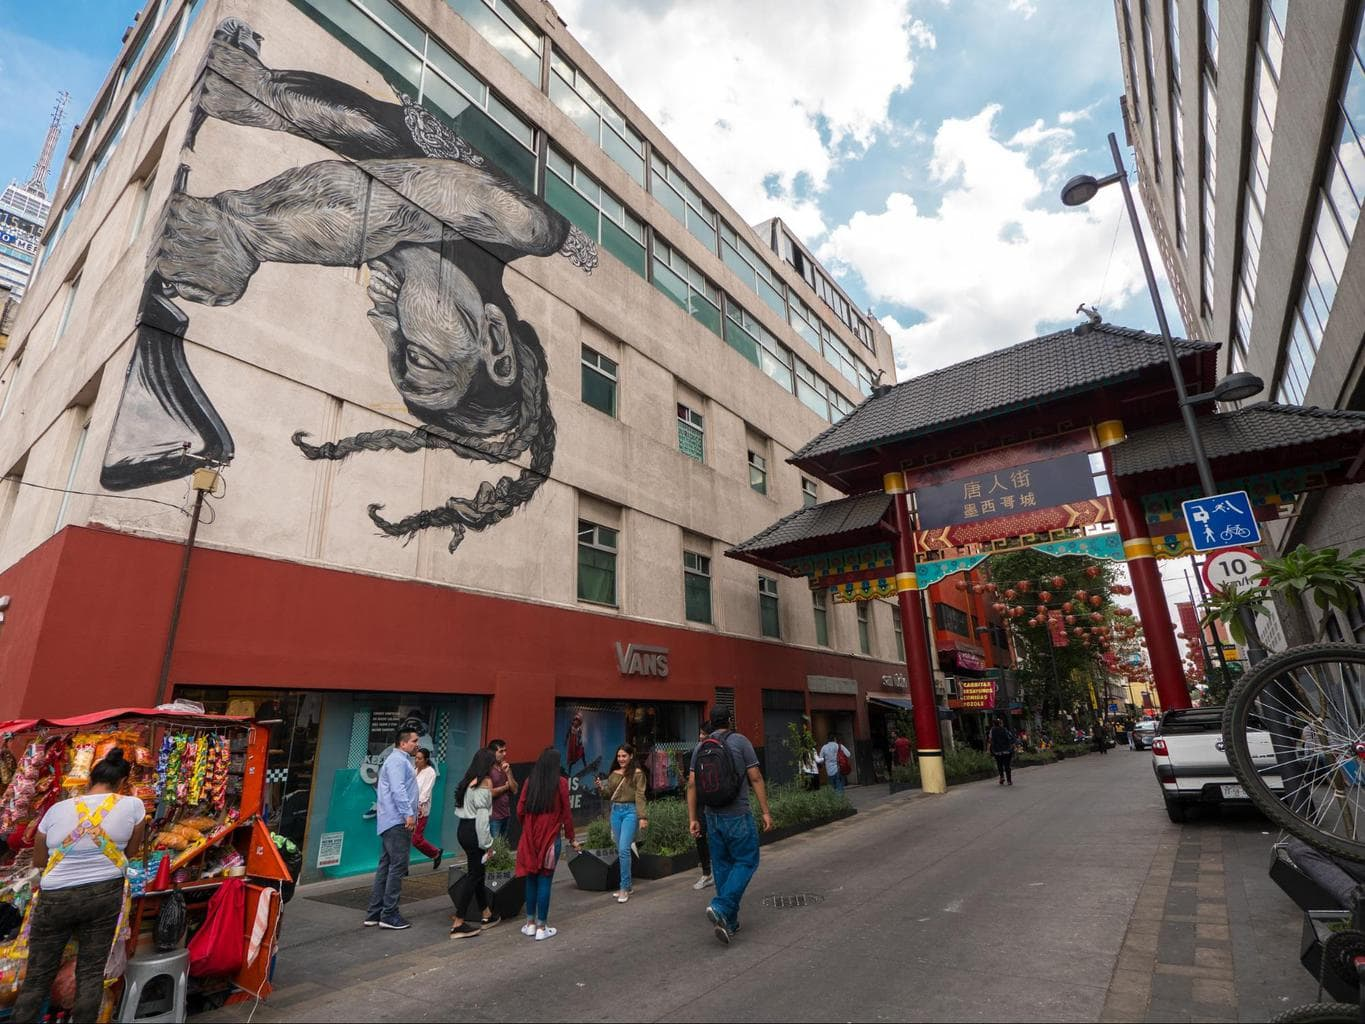 Mexico City's Chinatown